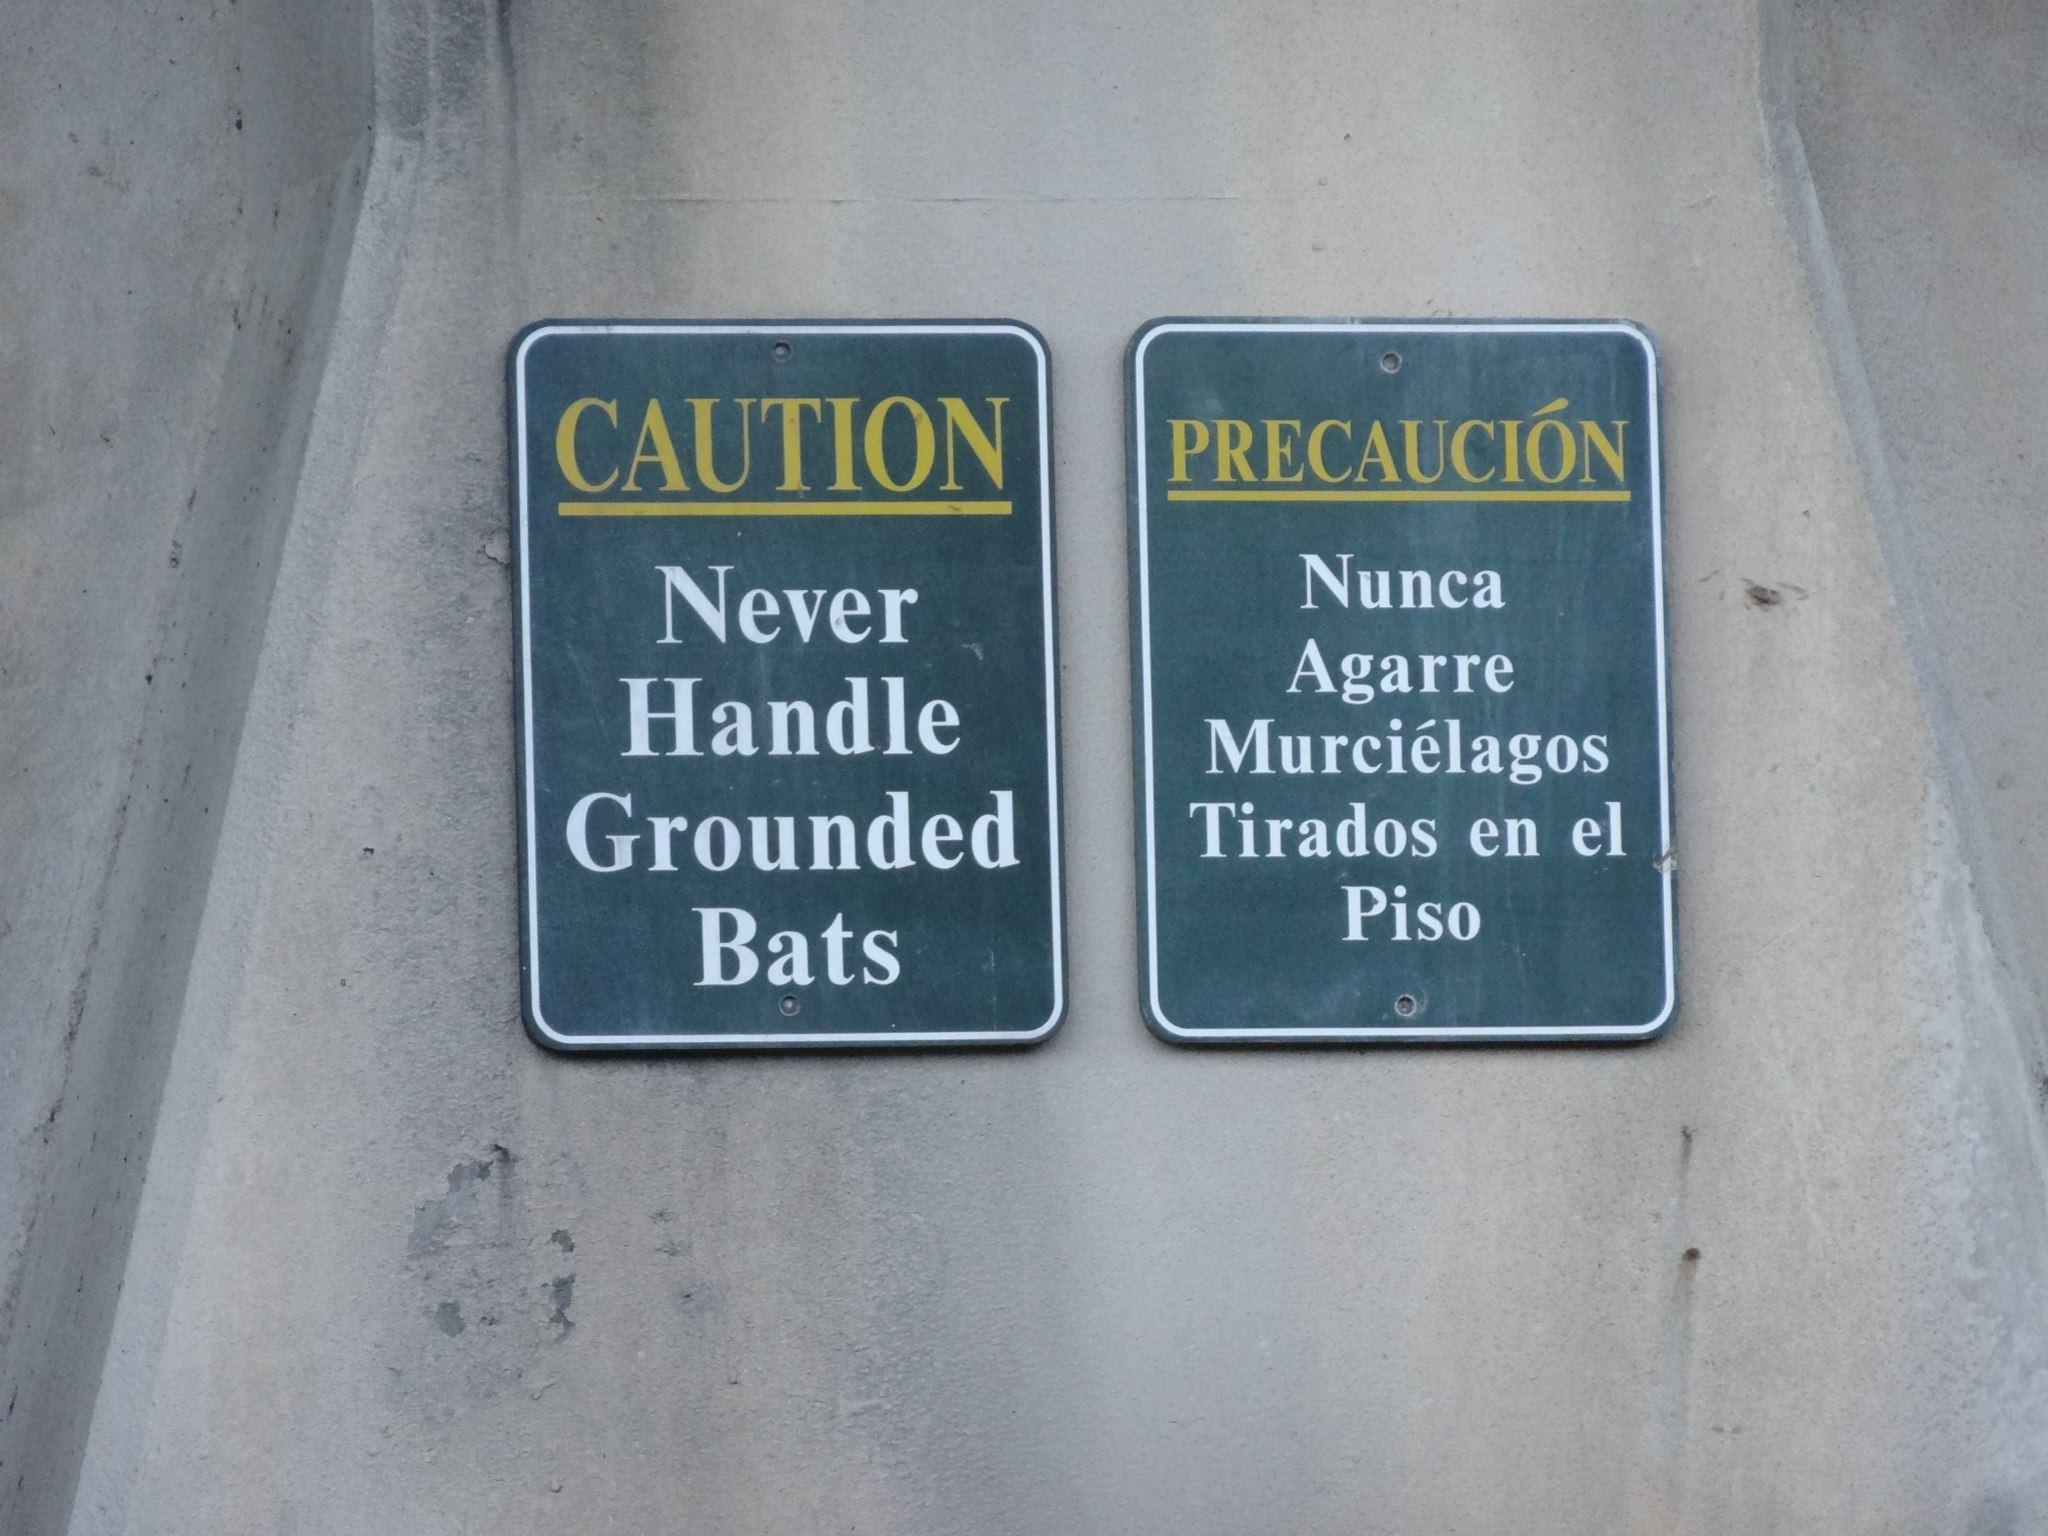 """""""Never handle grounded bats"""" sign under South Congress bridge in Austin Texas"""